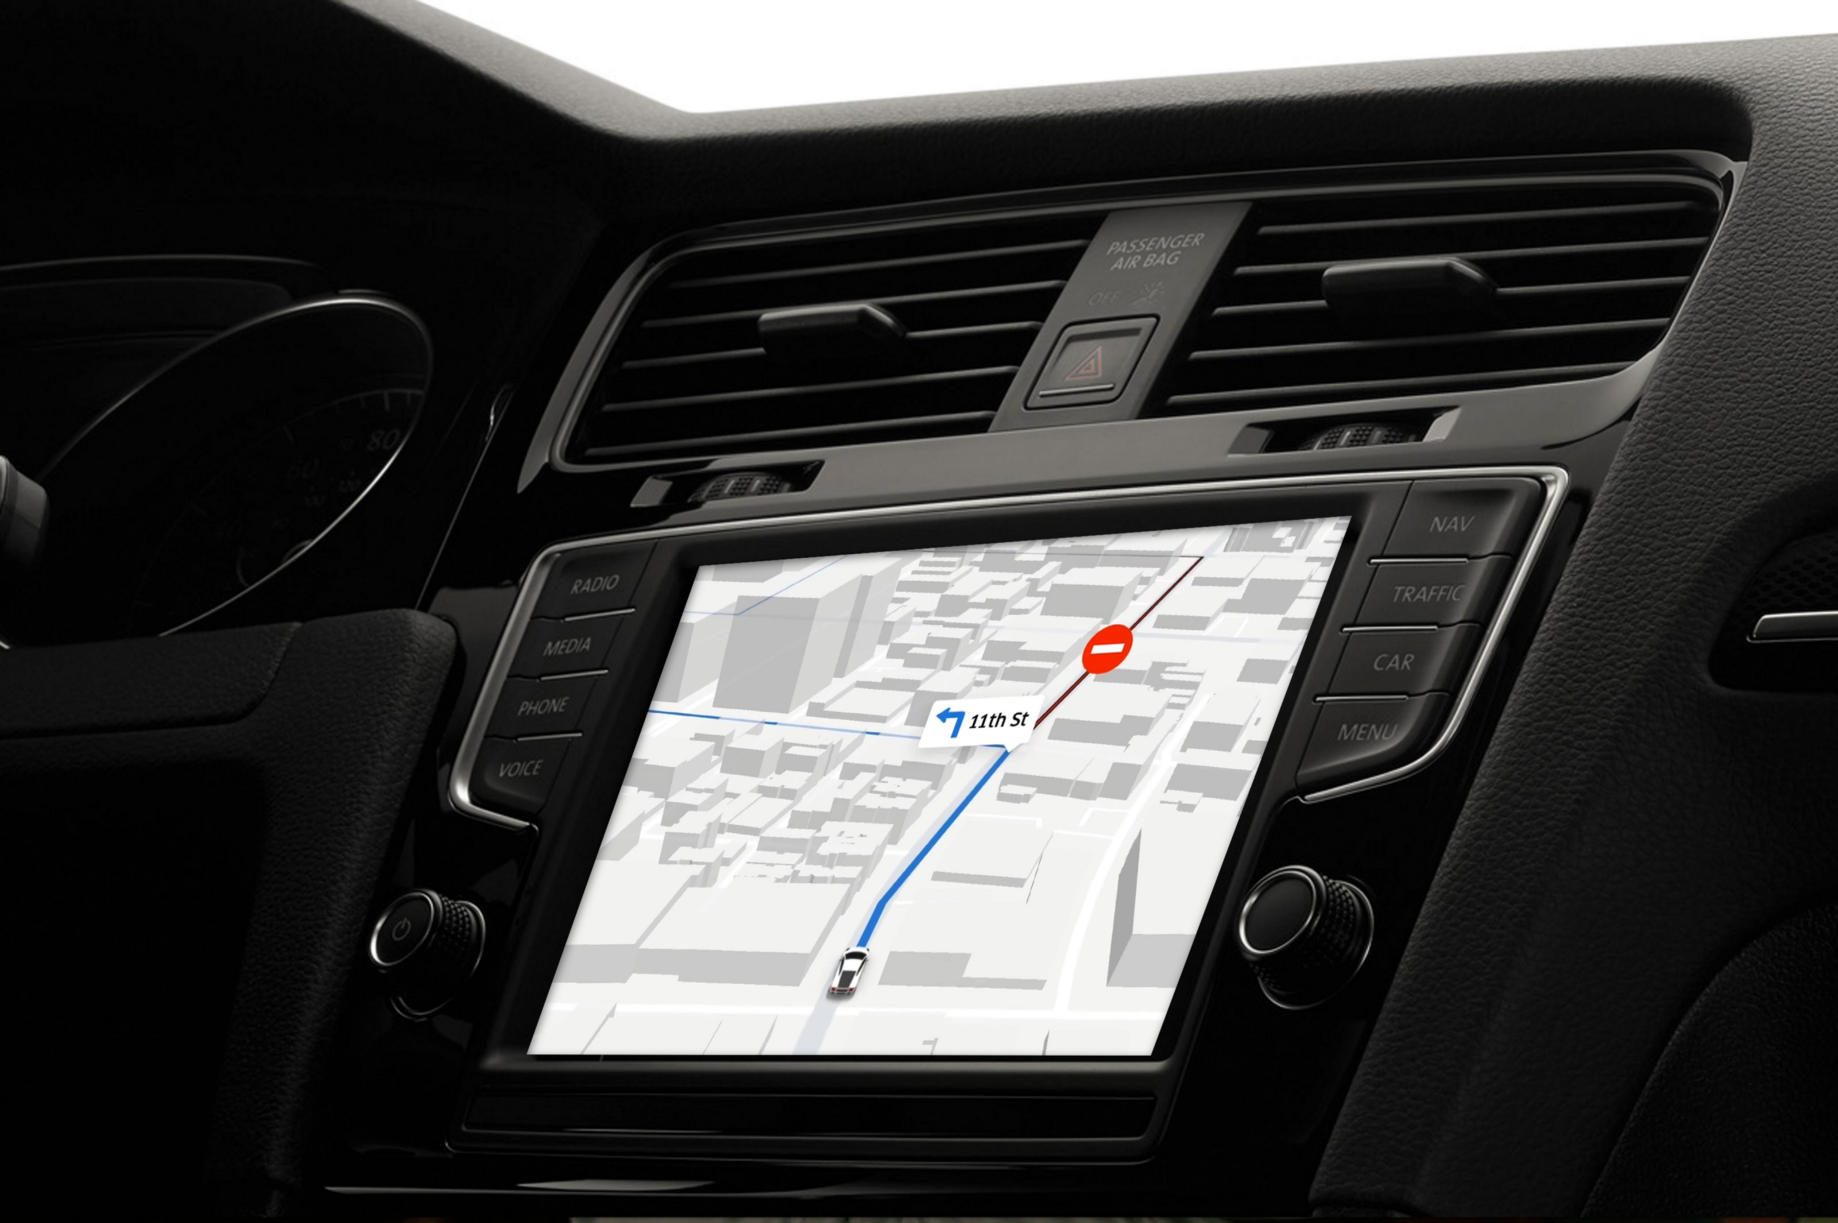 Bring your maps in-dash with Apple CarPlay - Points of interest